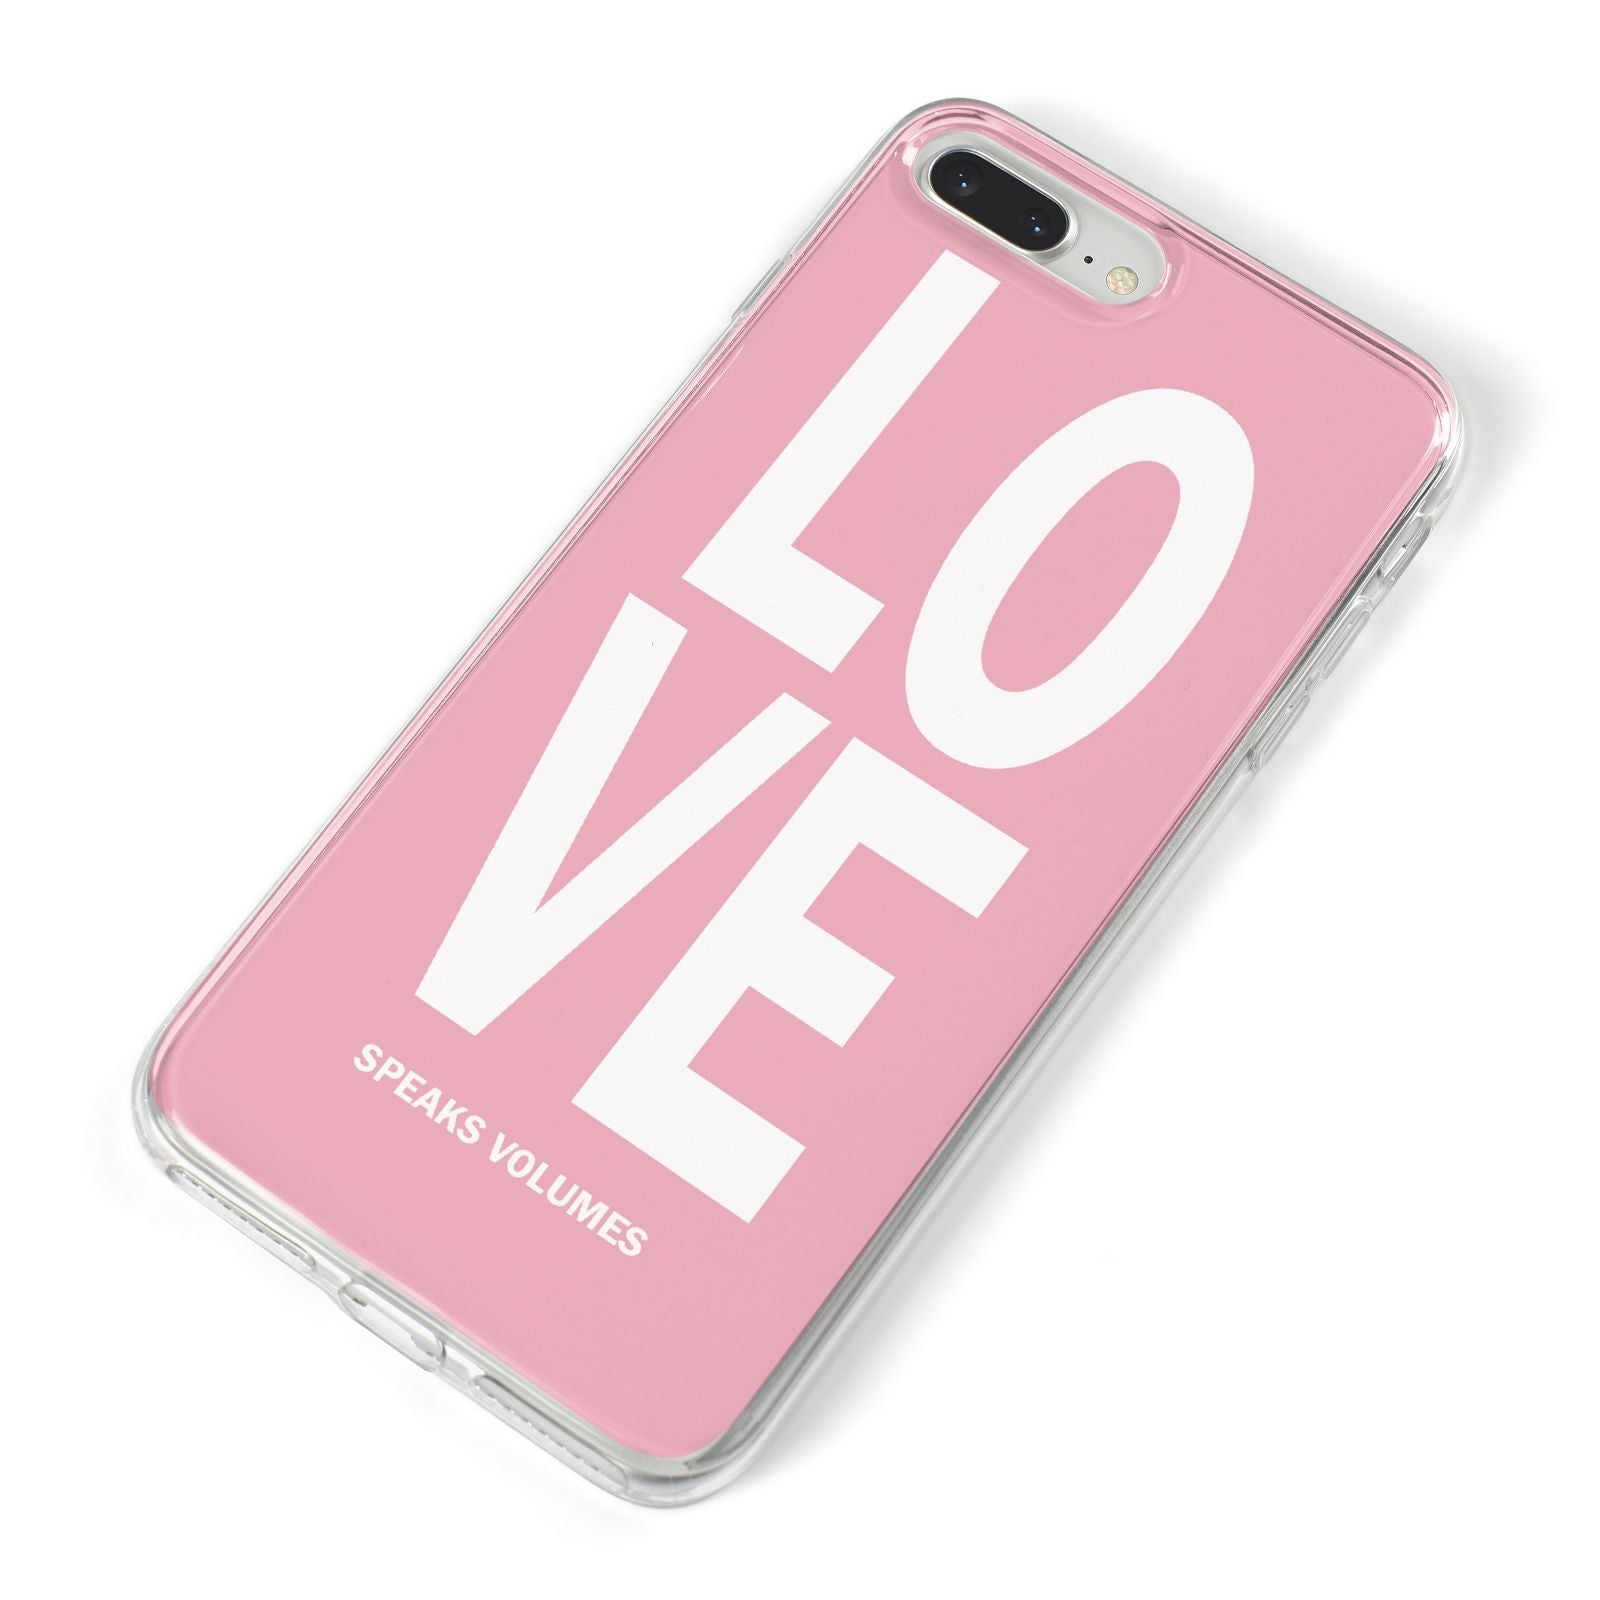 Valentines Love Speaks Volumes iPhone 8 Plus Bumper Case on Silver iPhone Alternative Image